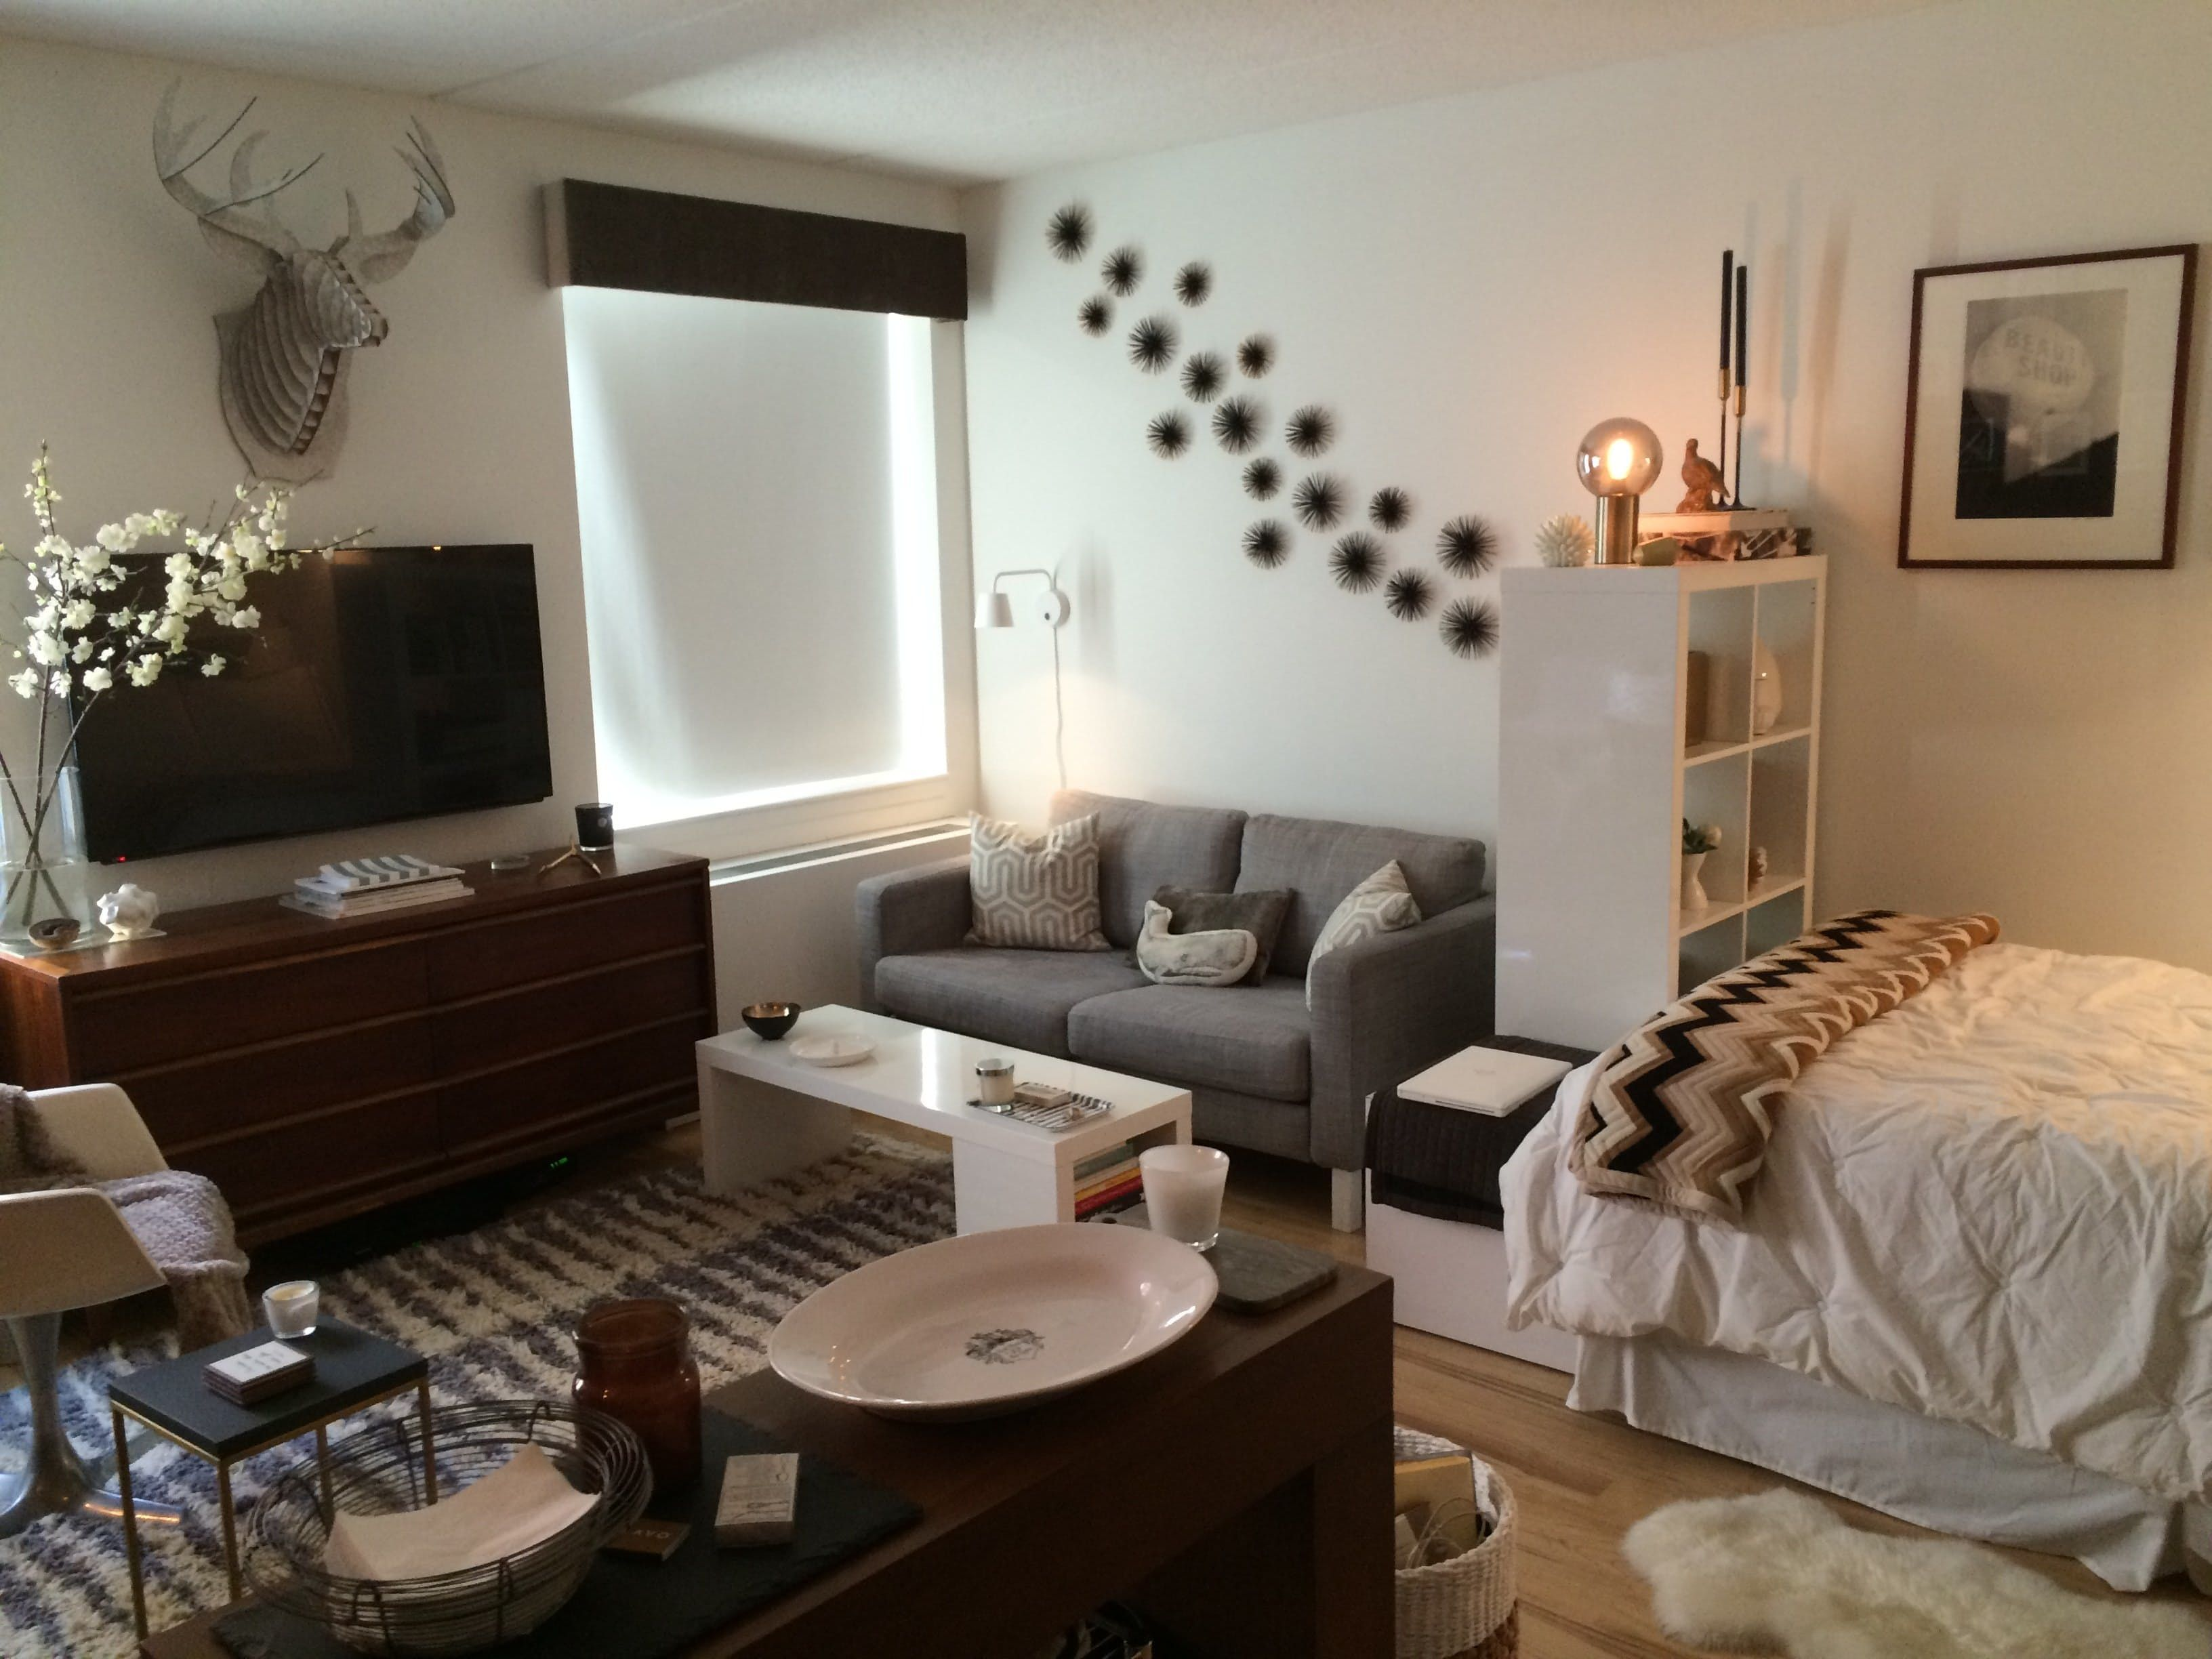 Basic living room apartment - 5 Studio Apartment Layouts That Work